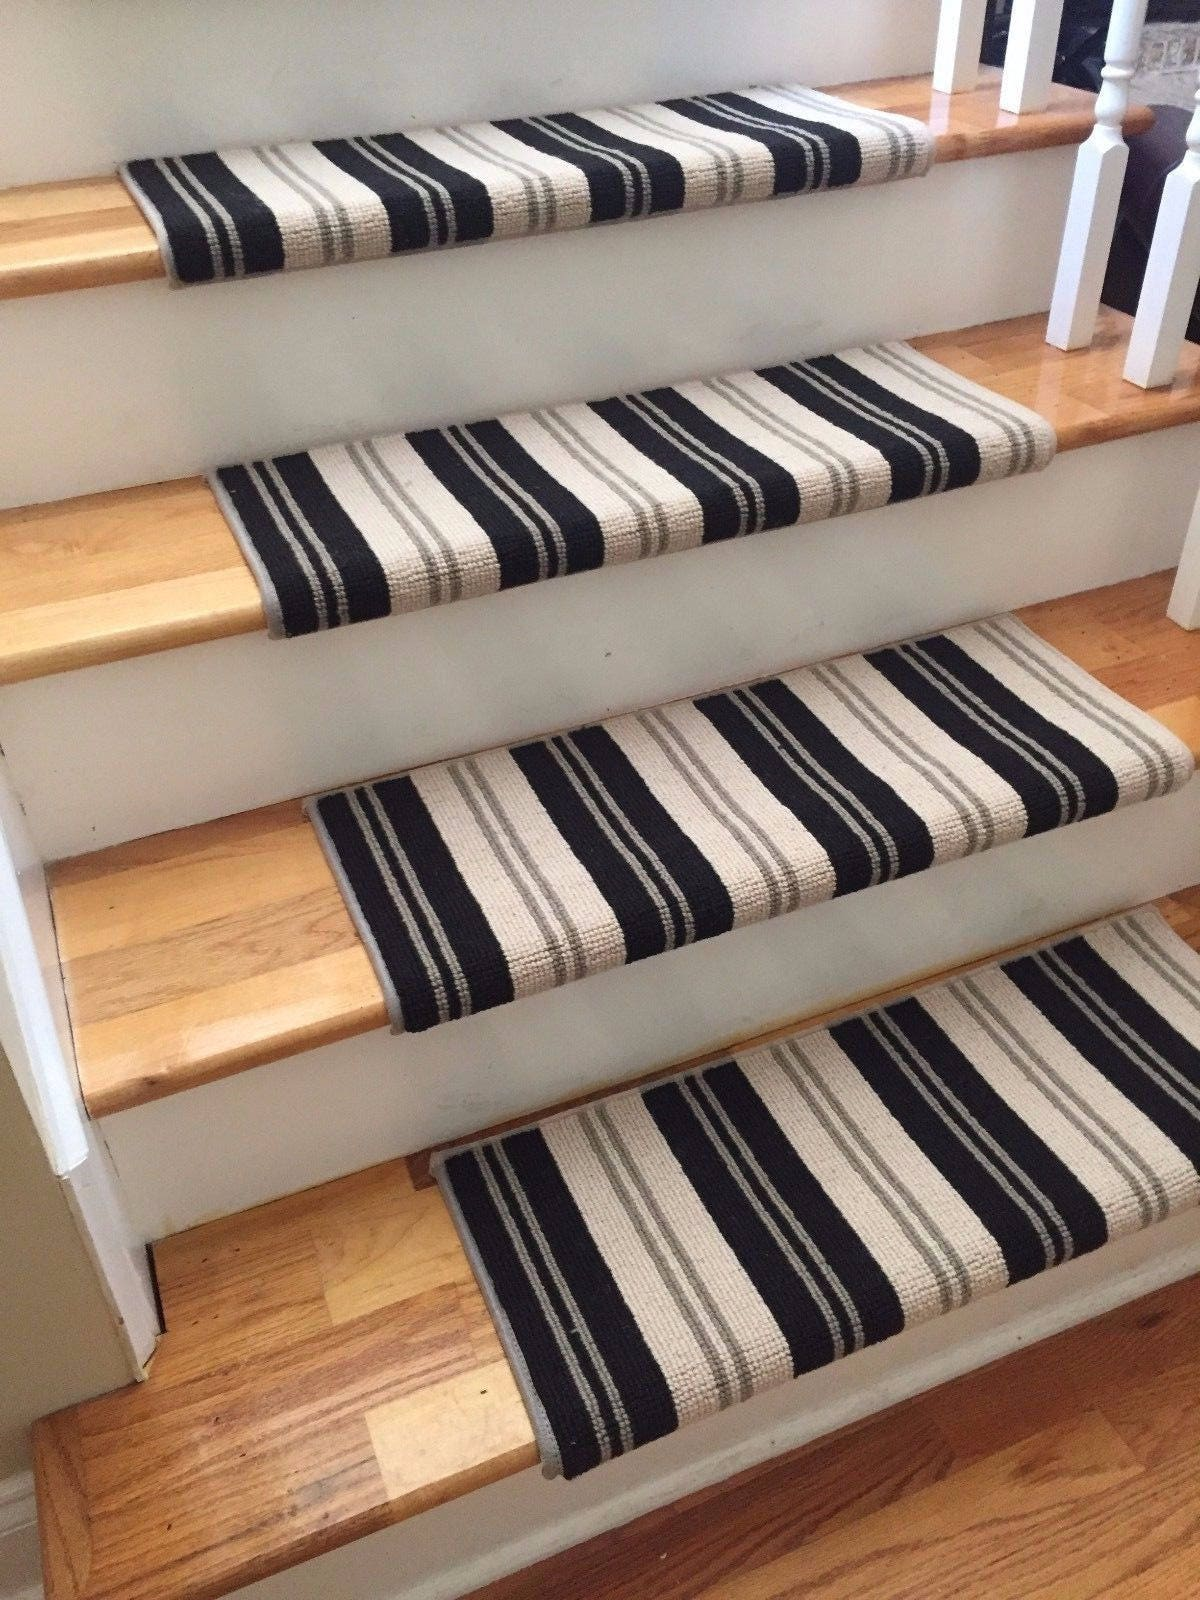 Wall Street 100% New Zealand Wool! TRUE Bullnose™ Carpet Stair Tread Runner  Replacement For Style, Comfort And Safety (Sold Each)